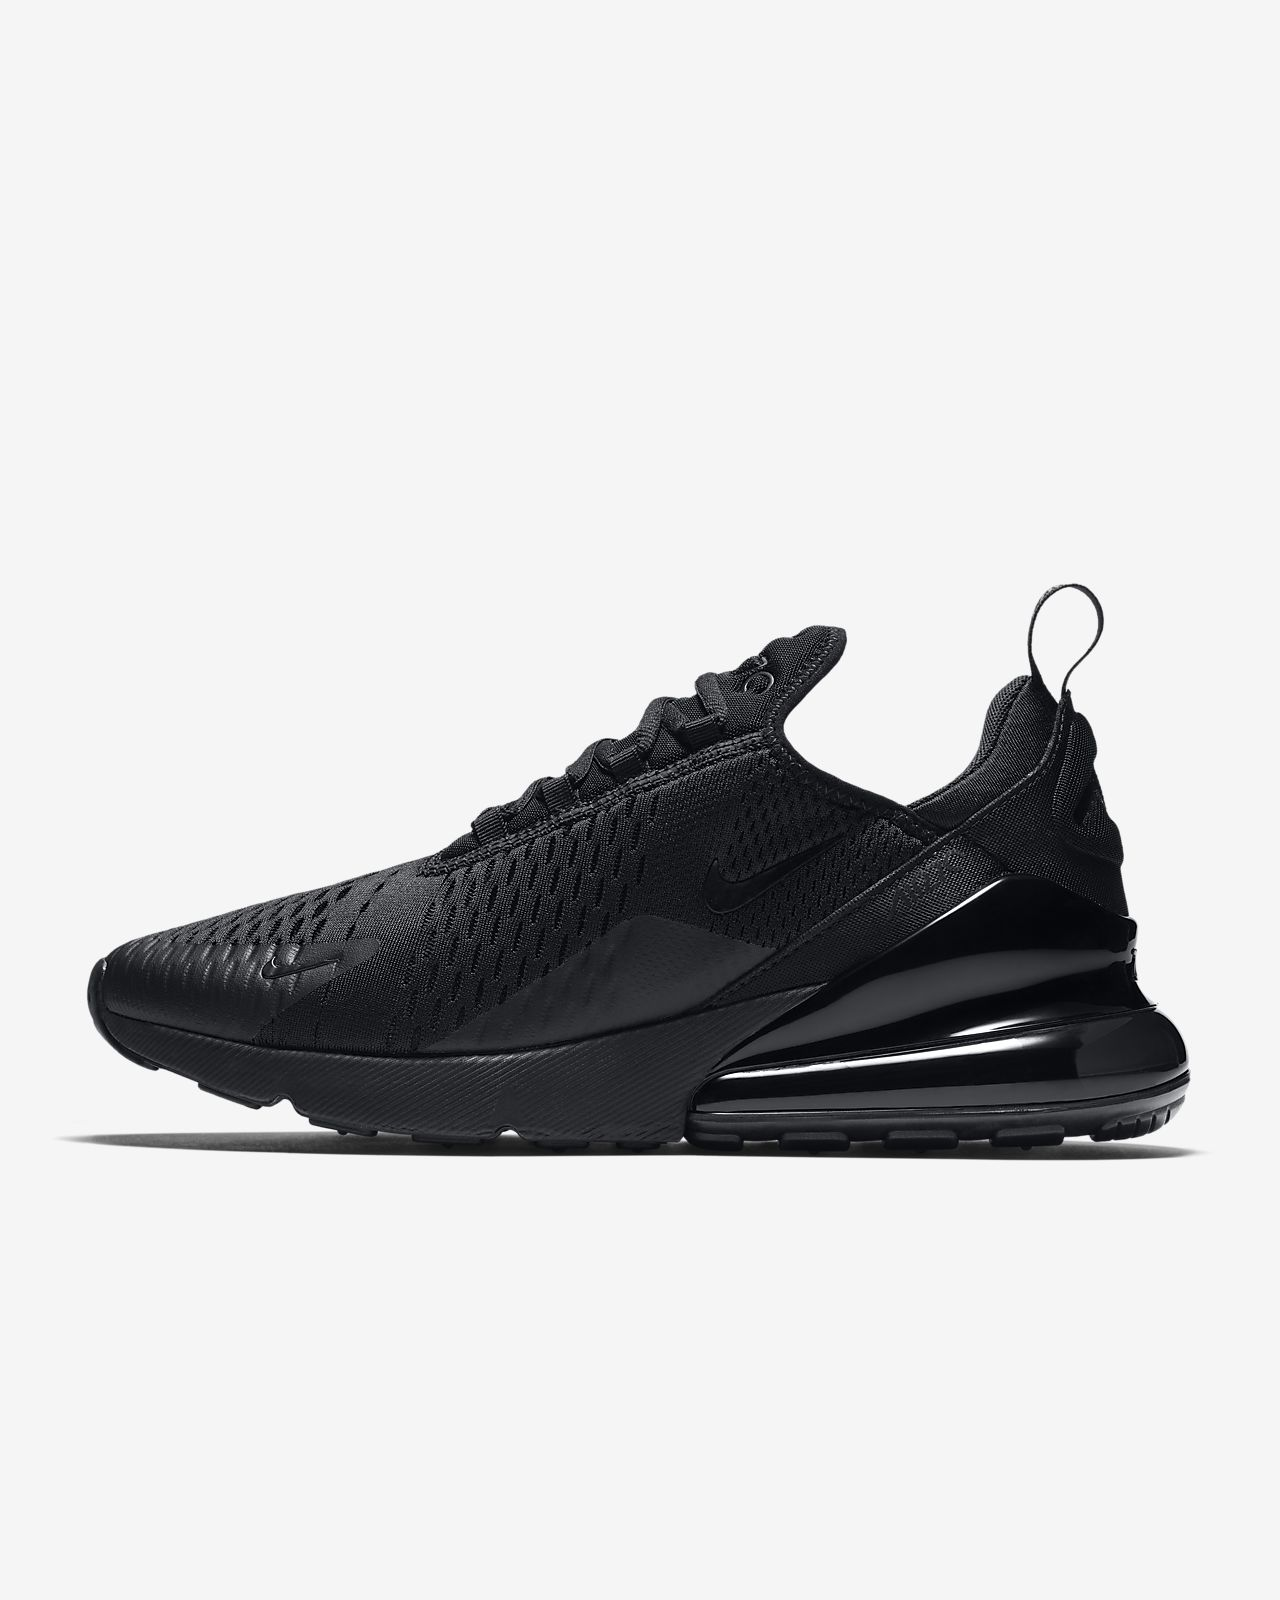 meet 31116 46842 Men s Shoe. Nike Air Max 270